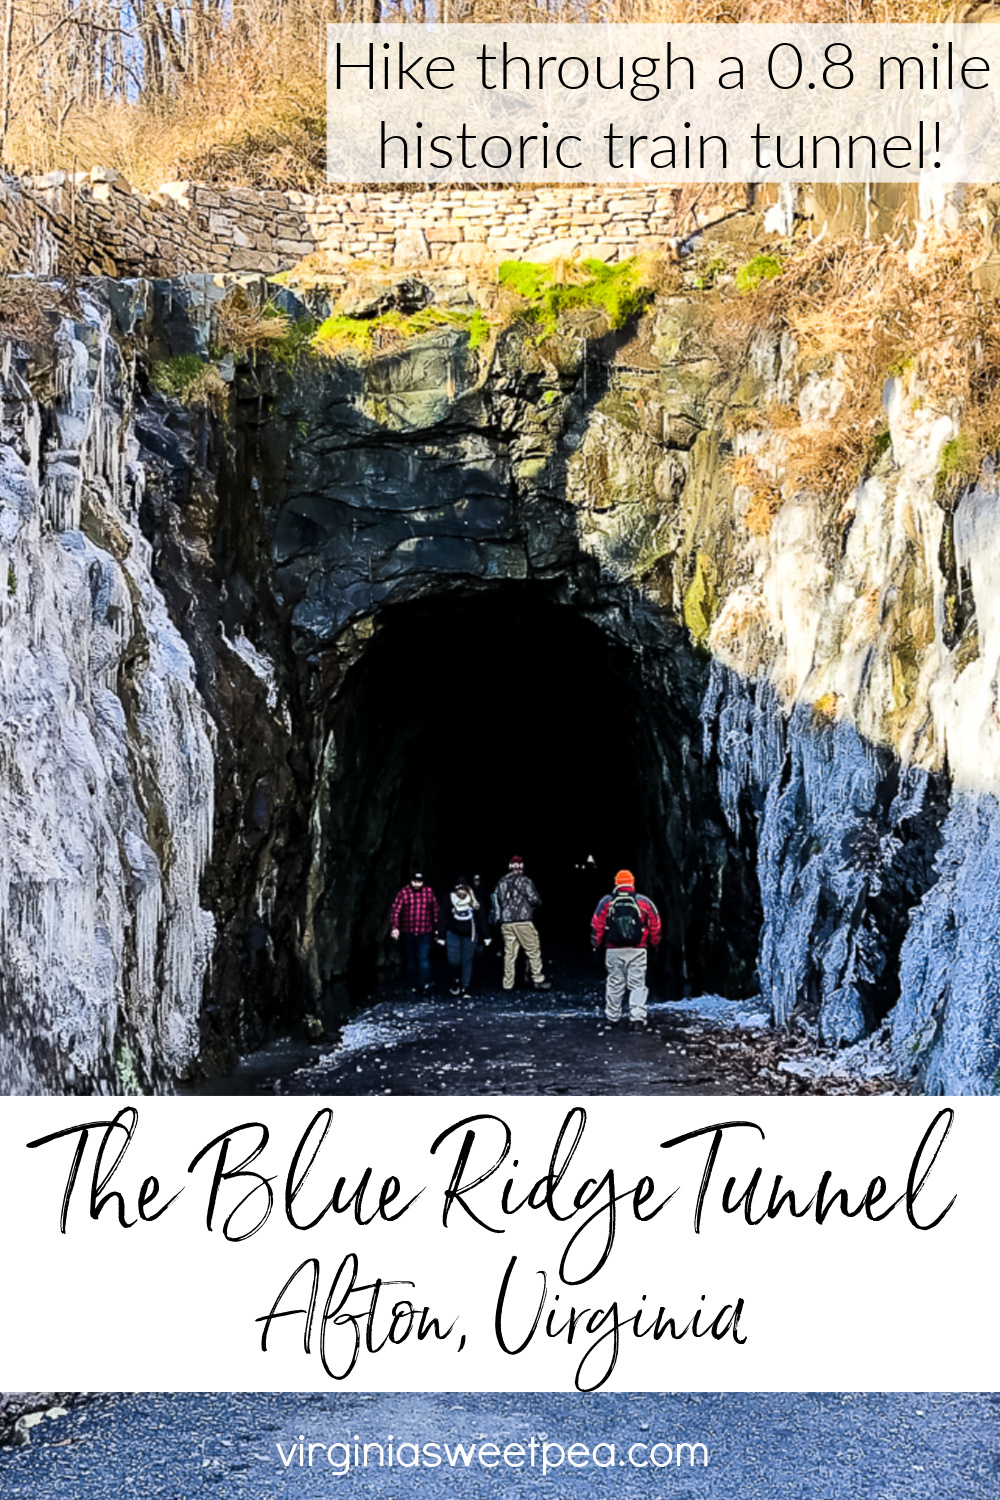 Hike through a 0.8 mile 1850's train tunnel in Afton, VA.  Get tips for visiting this engineering masterpiece that has been closed since 1944 and converted to a hiking trail that opened to the public in November 2020. via @spaula